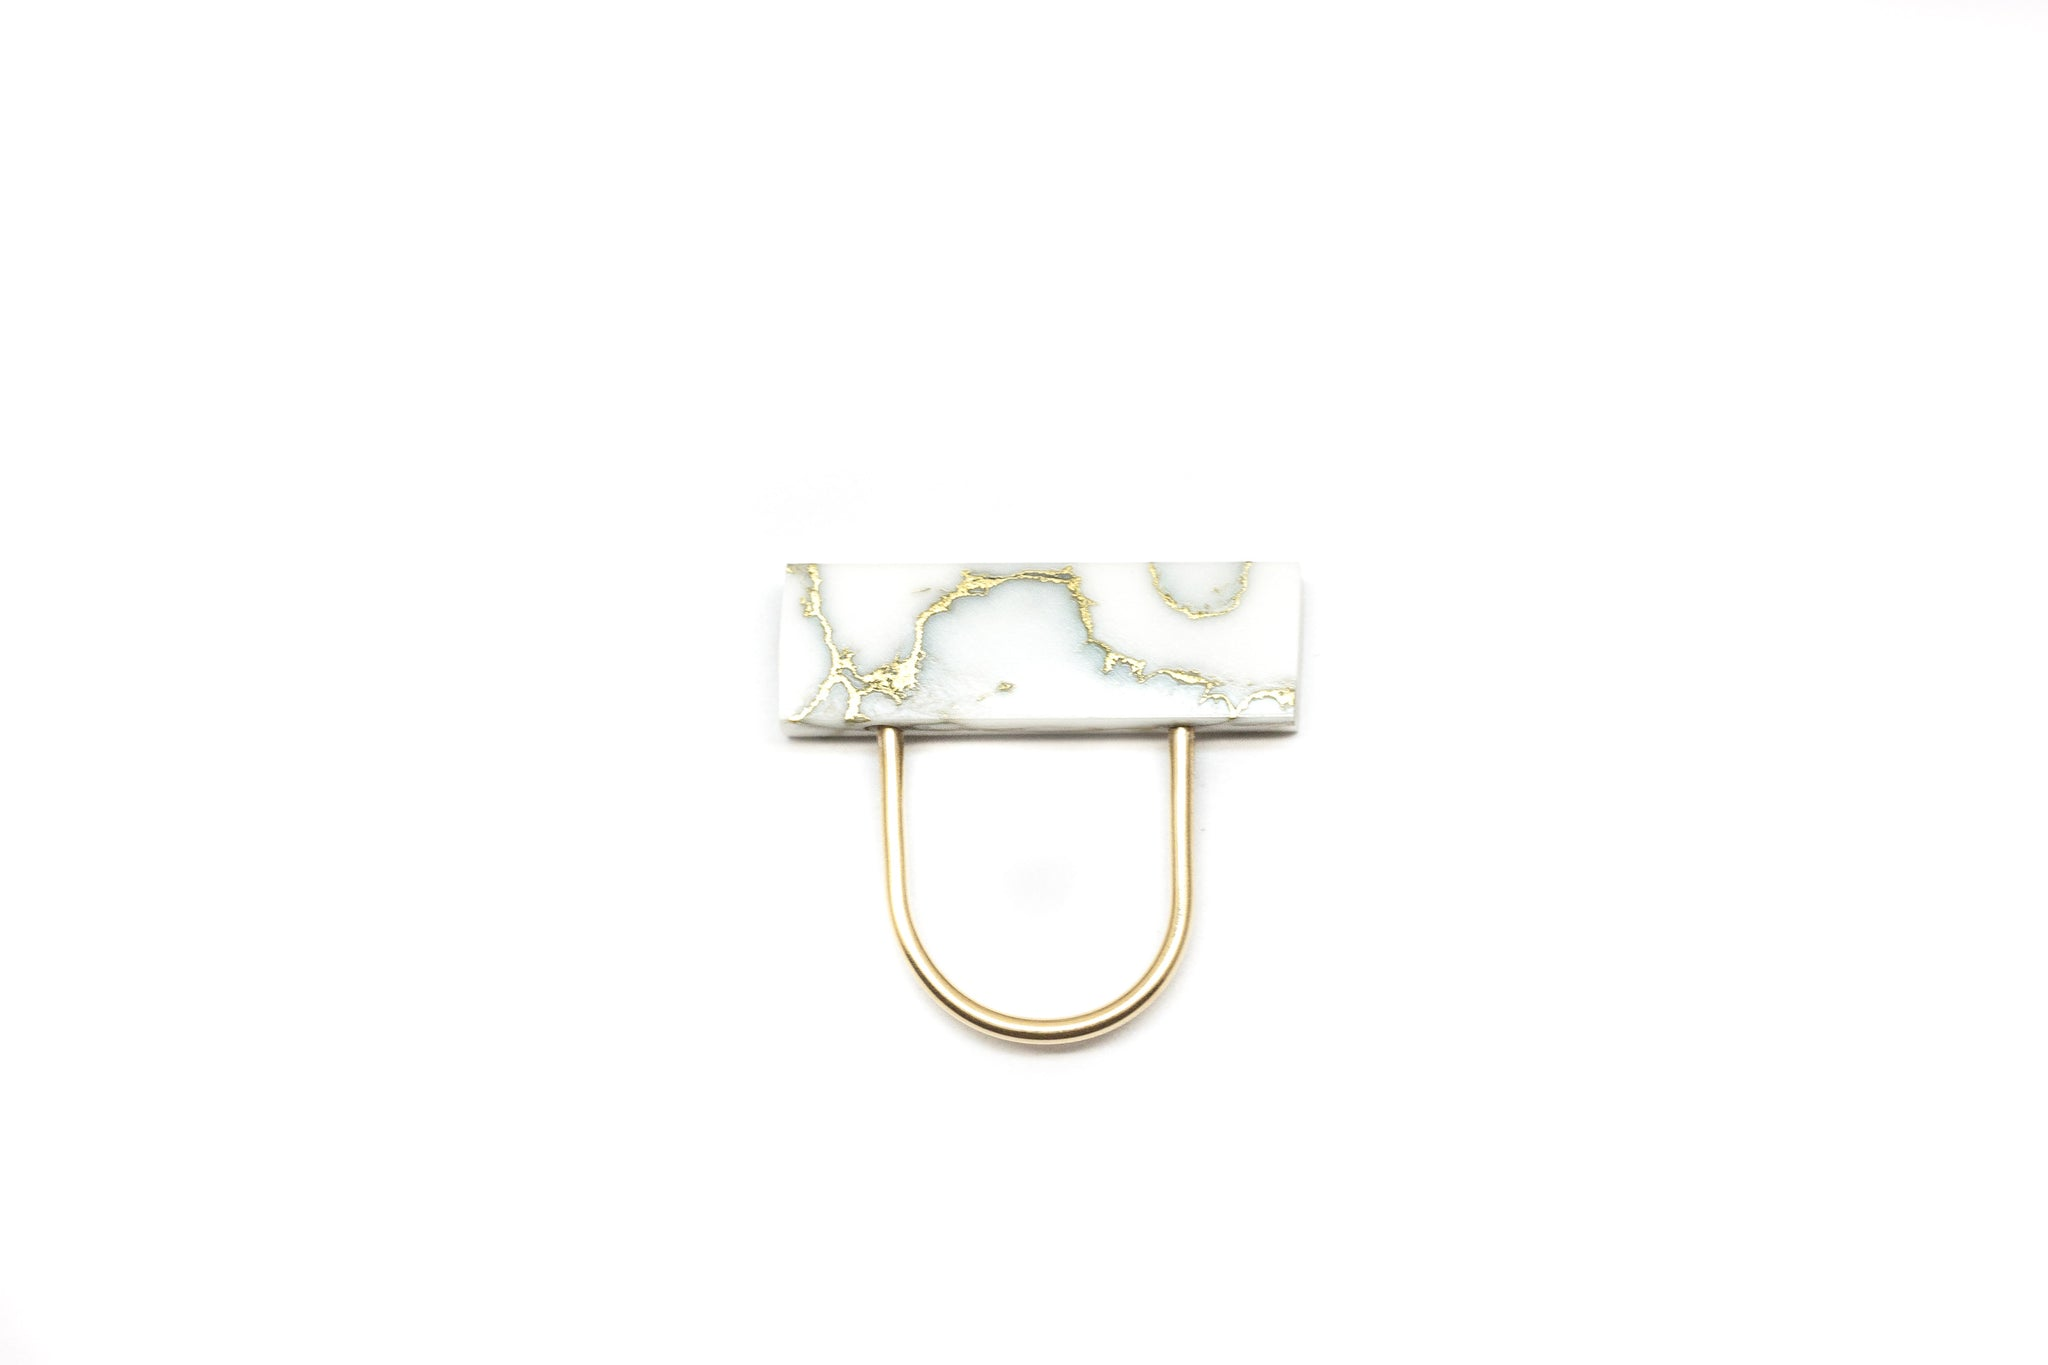 Gold and marble hightop U ring